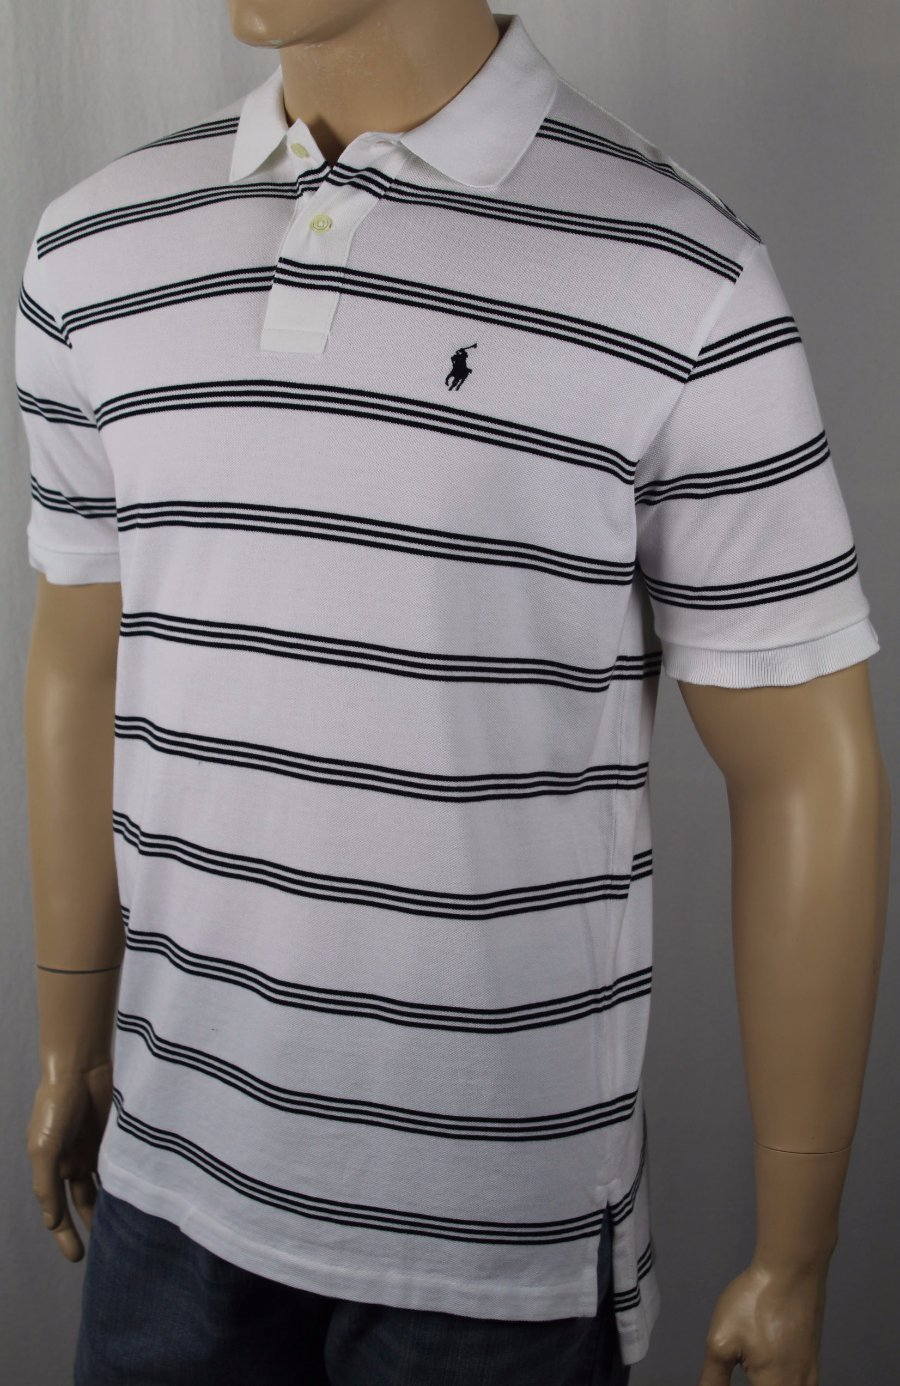 Polo Ralph Lauren Performance White Big Black Pony Shirt NWT